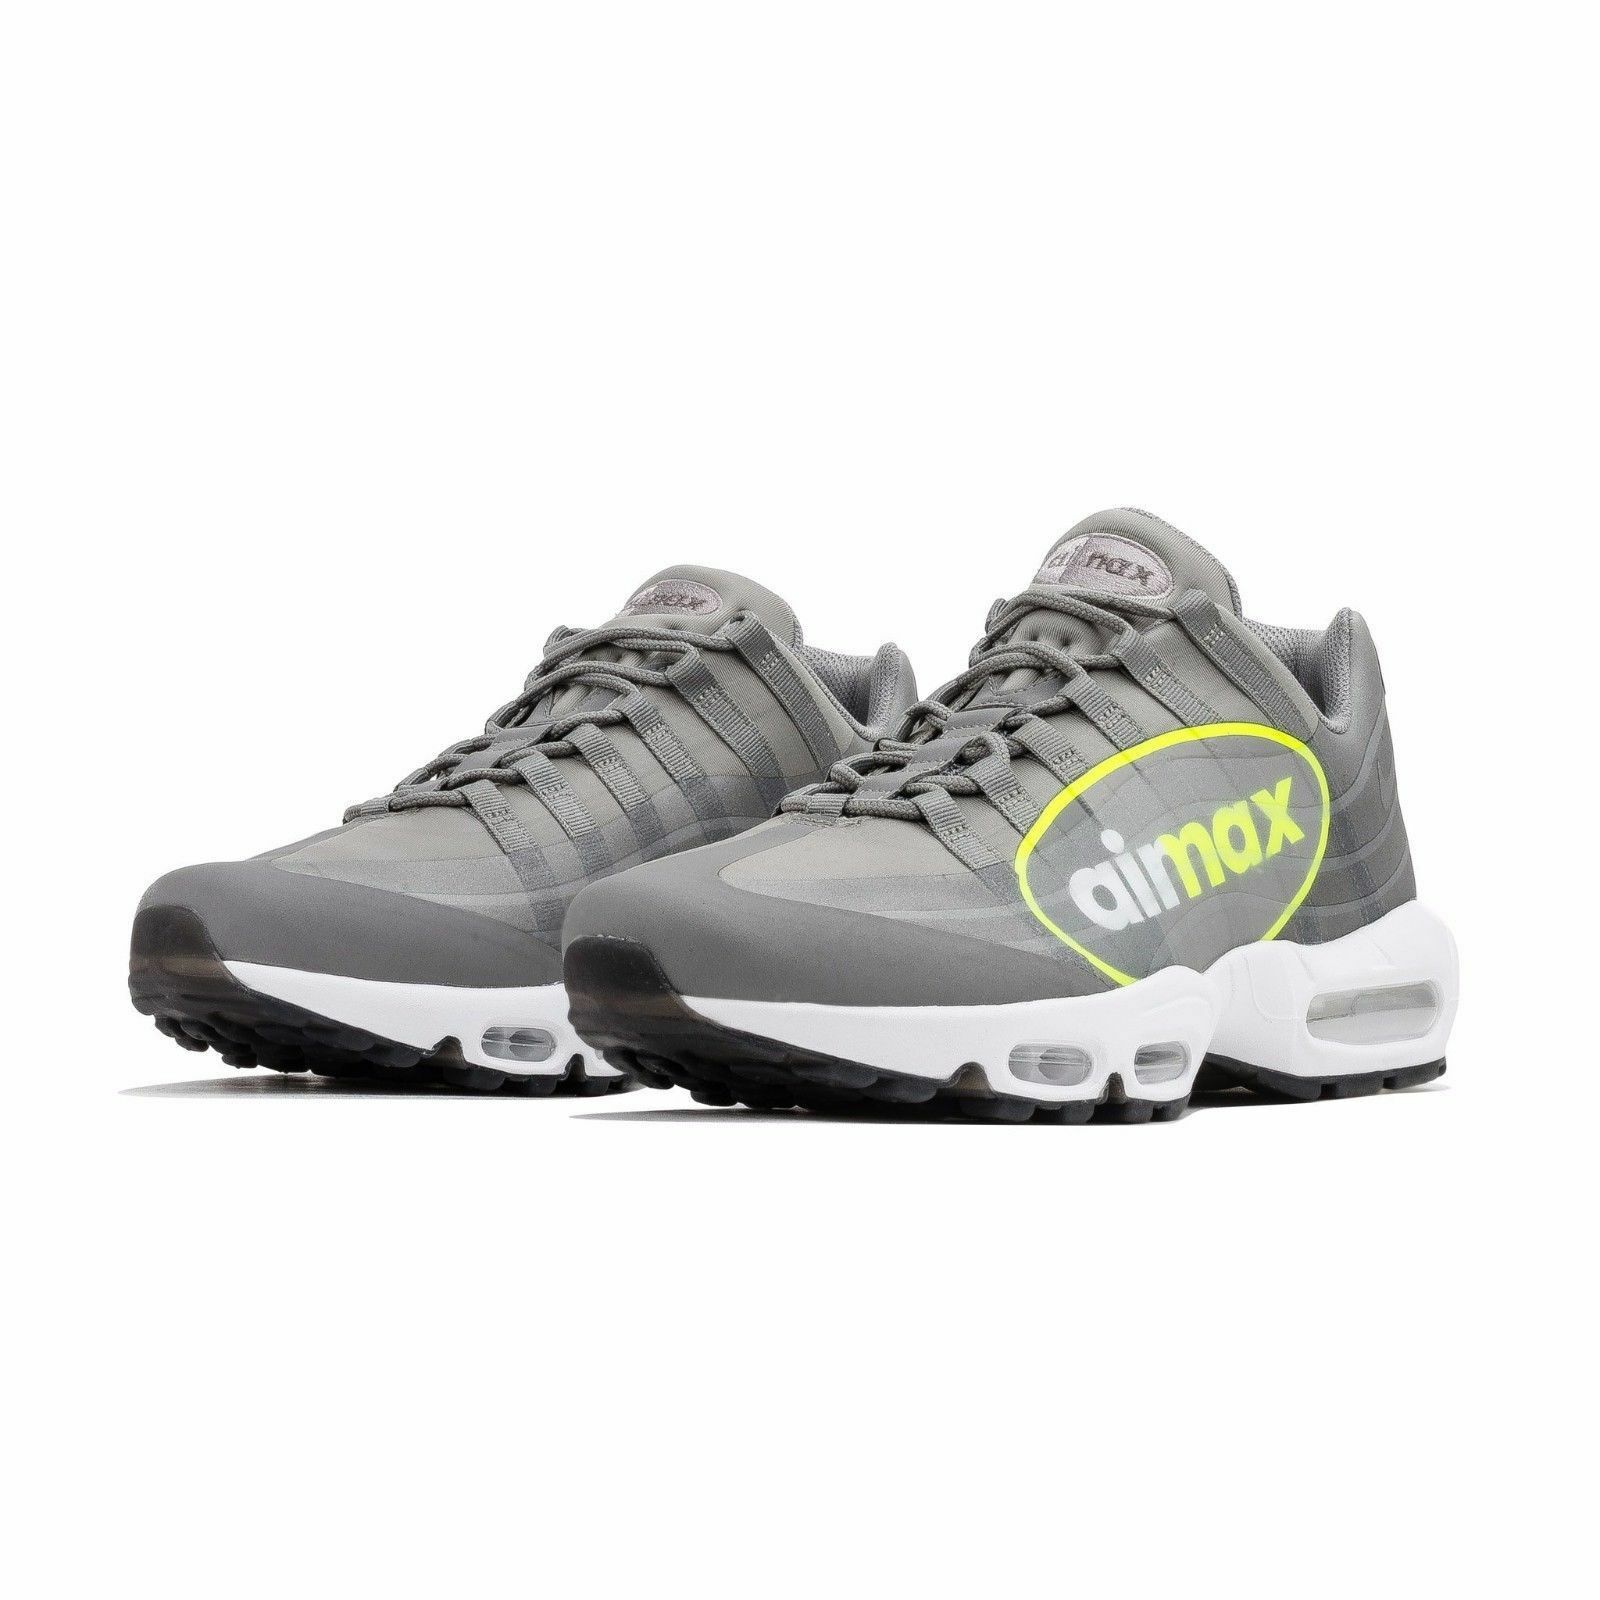 NIKE AIR MAX 95 NS GPX MEN'S SHOES SIZE  14 DUSTY VAULT DARK PEWTER AJ7183 001